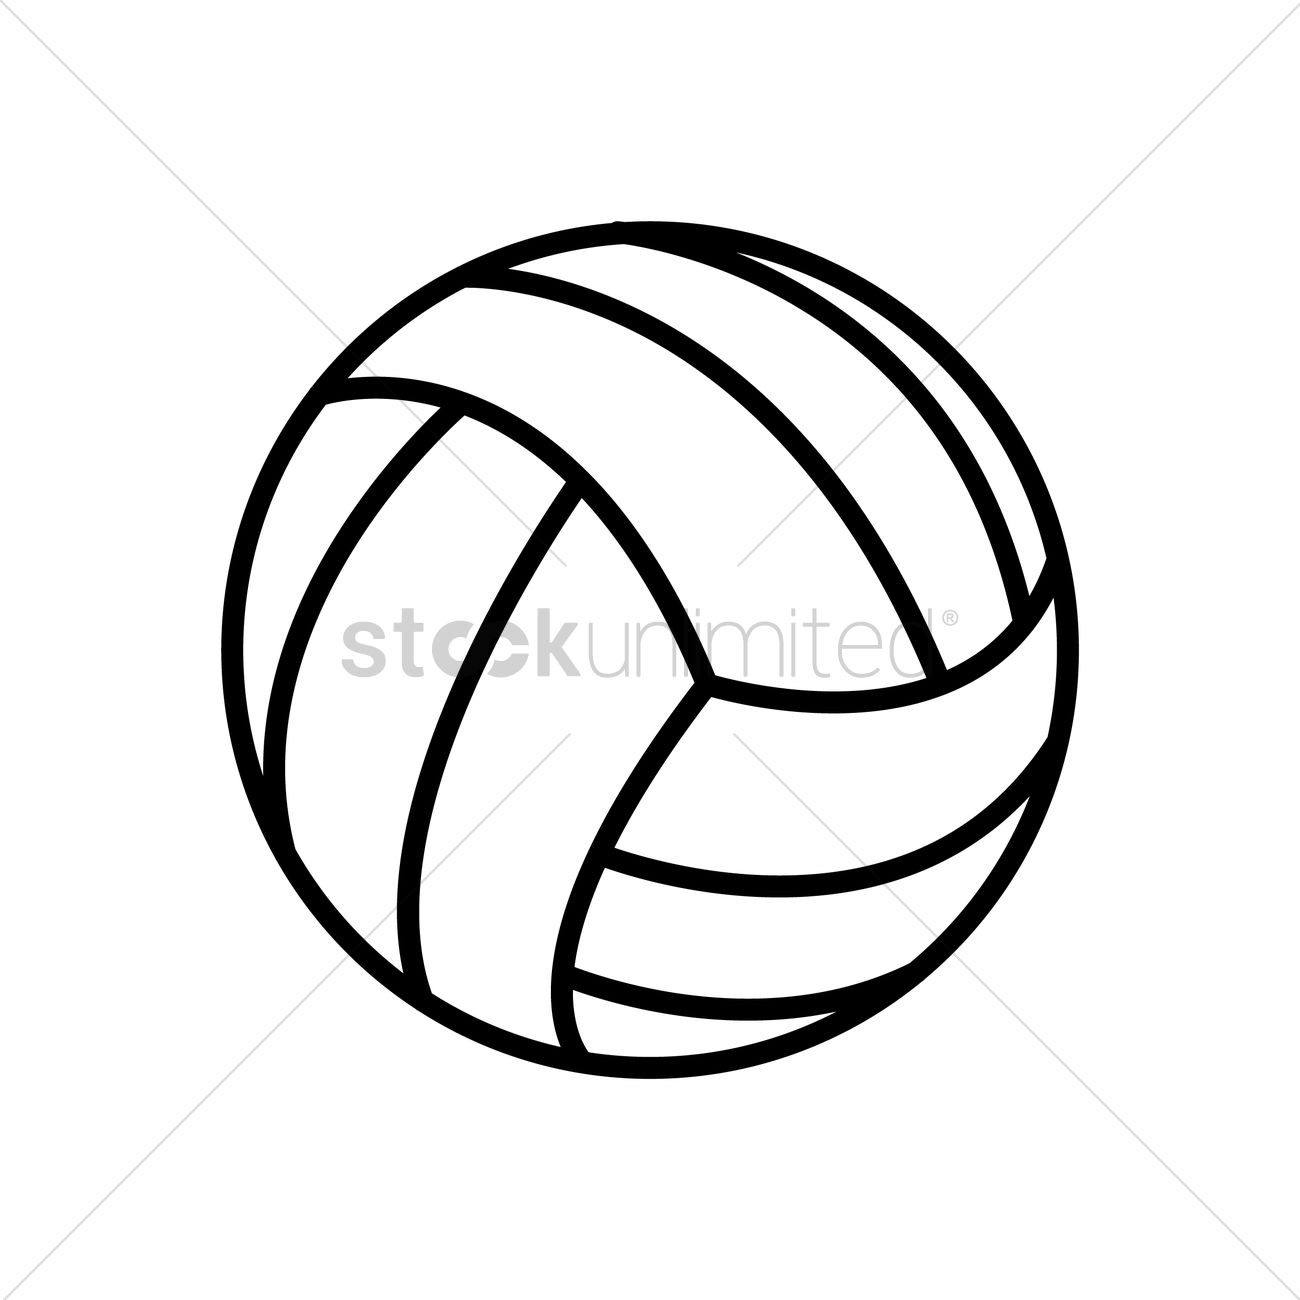 volleyball vector image 1547574 stockunlimited rh stockunlimited com volleyball vector art that can be outlined volleyball vector free